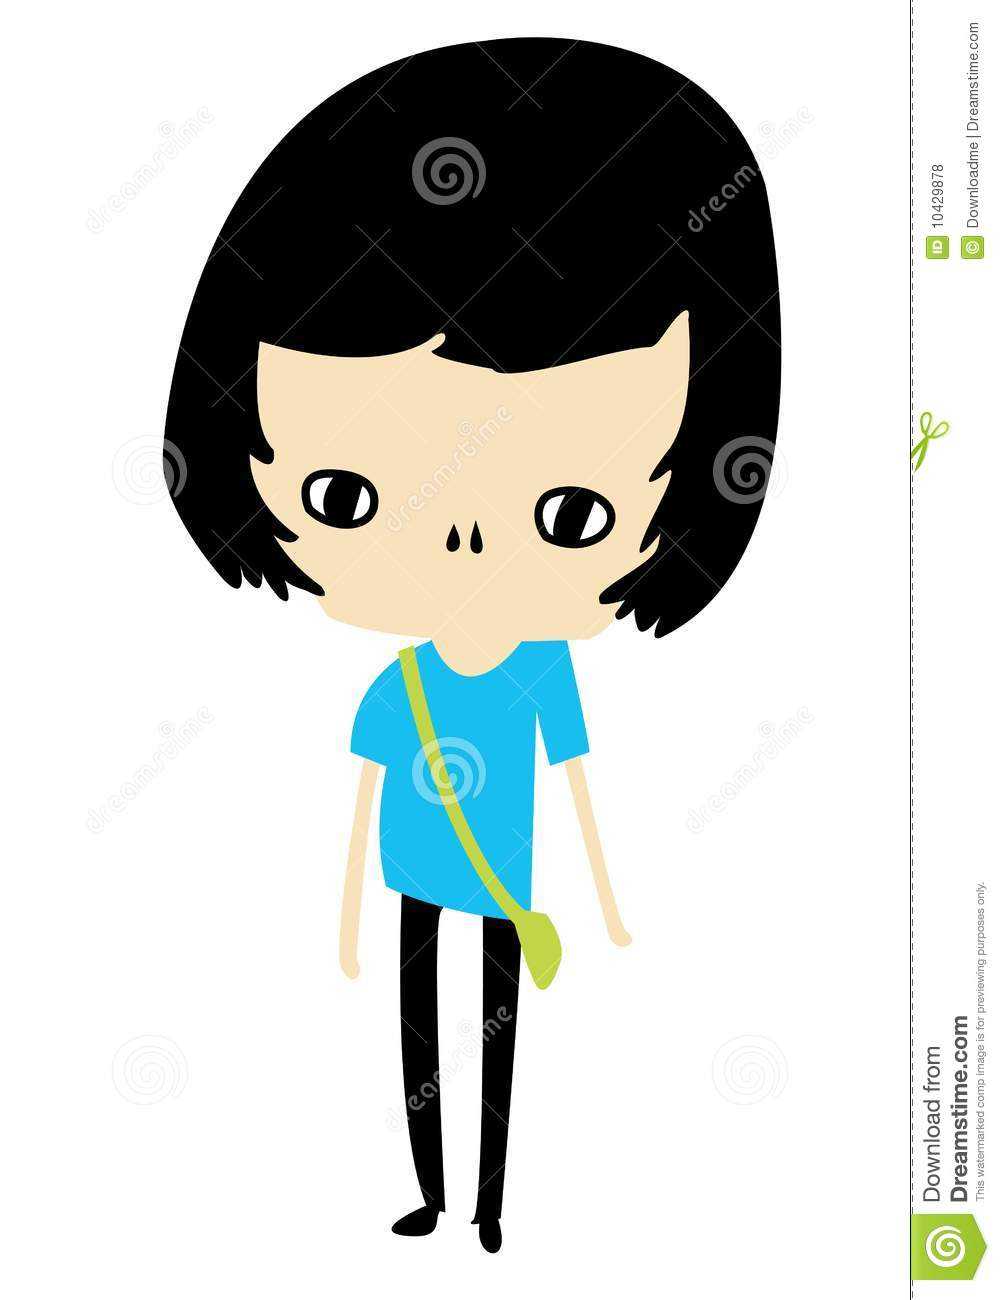 Cartoon Characters With Big Heads : Girl character royalty free stock photos image